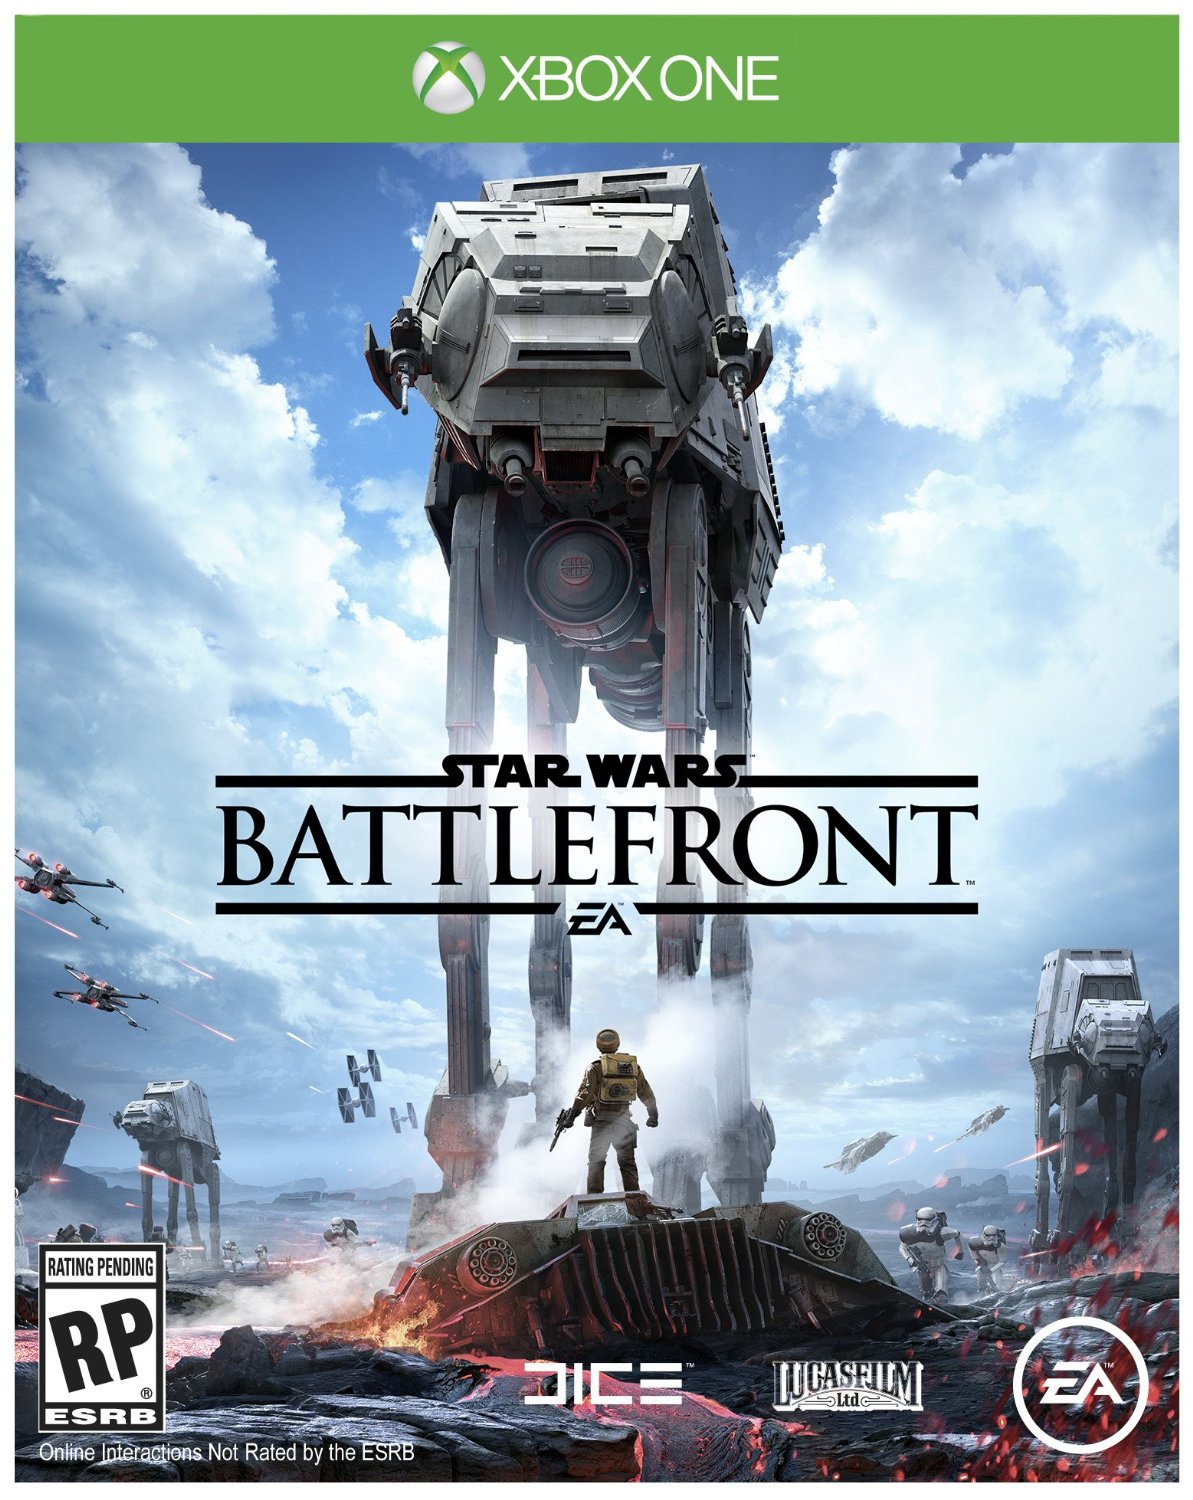 star wars battlefront game covers xbox one ps4 pc. Black Bedroom Furniture Sets. Home Design Ideas